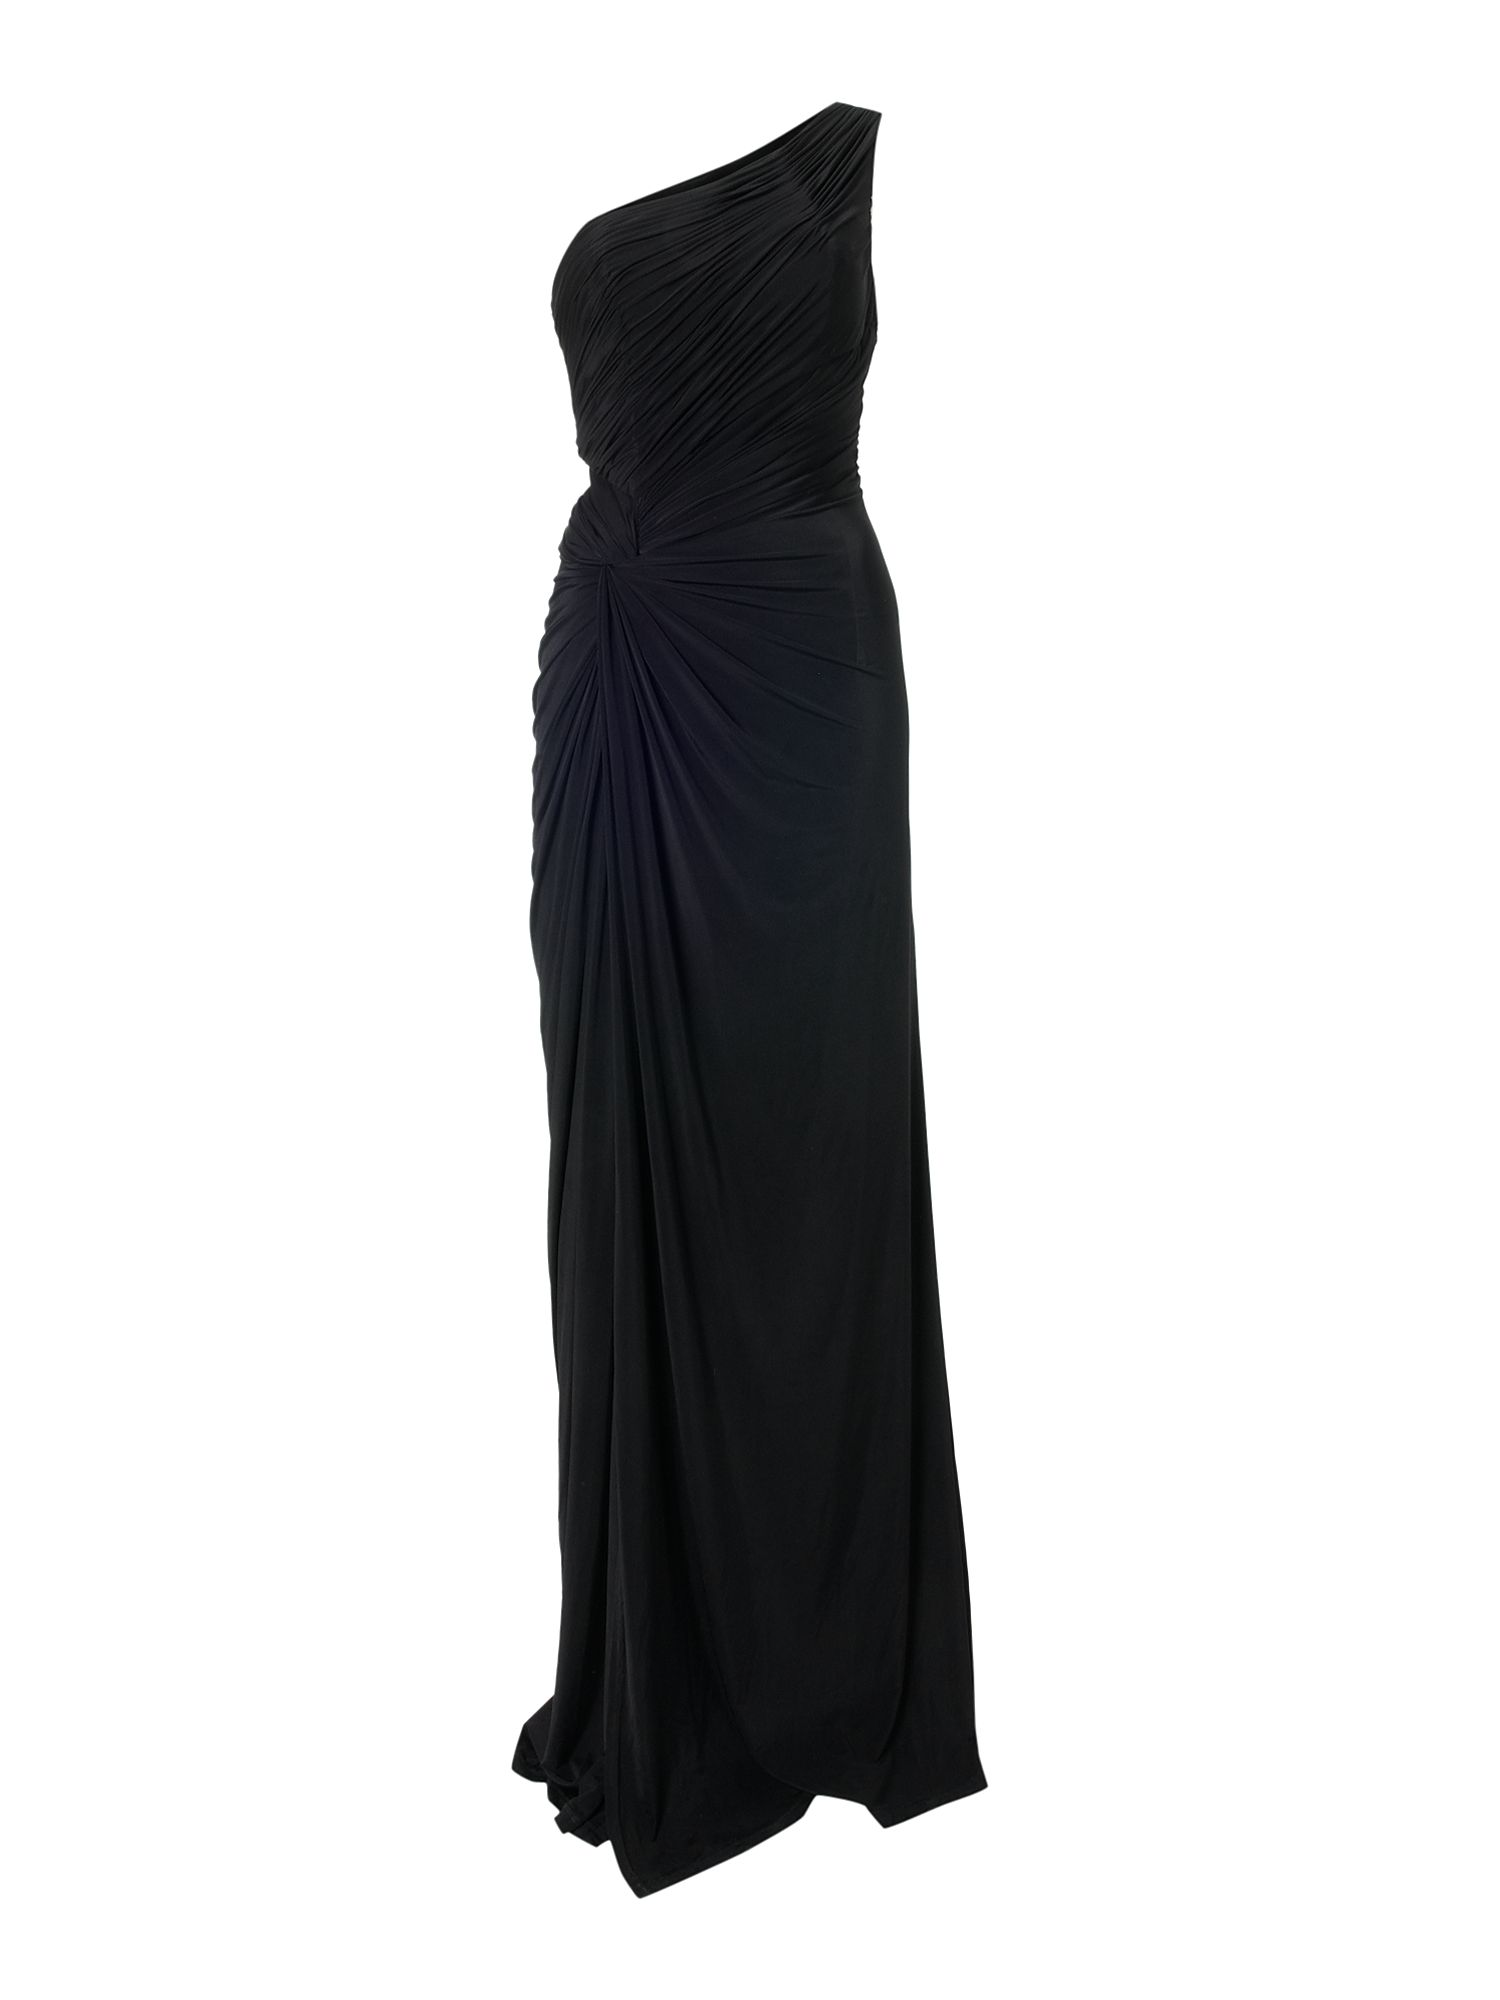 Asymmetric one shoulder maxi dress Black